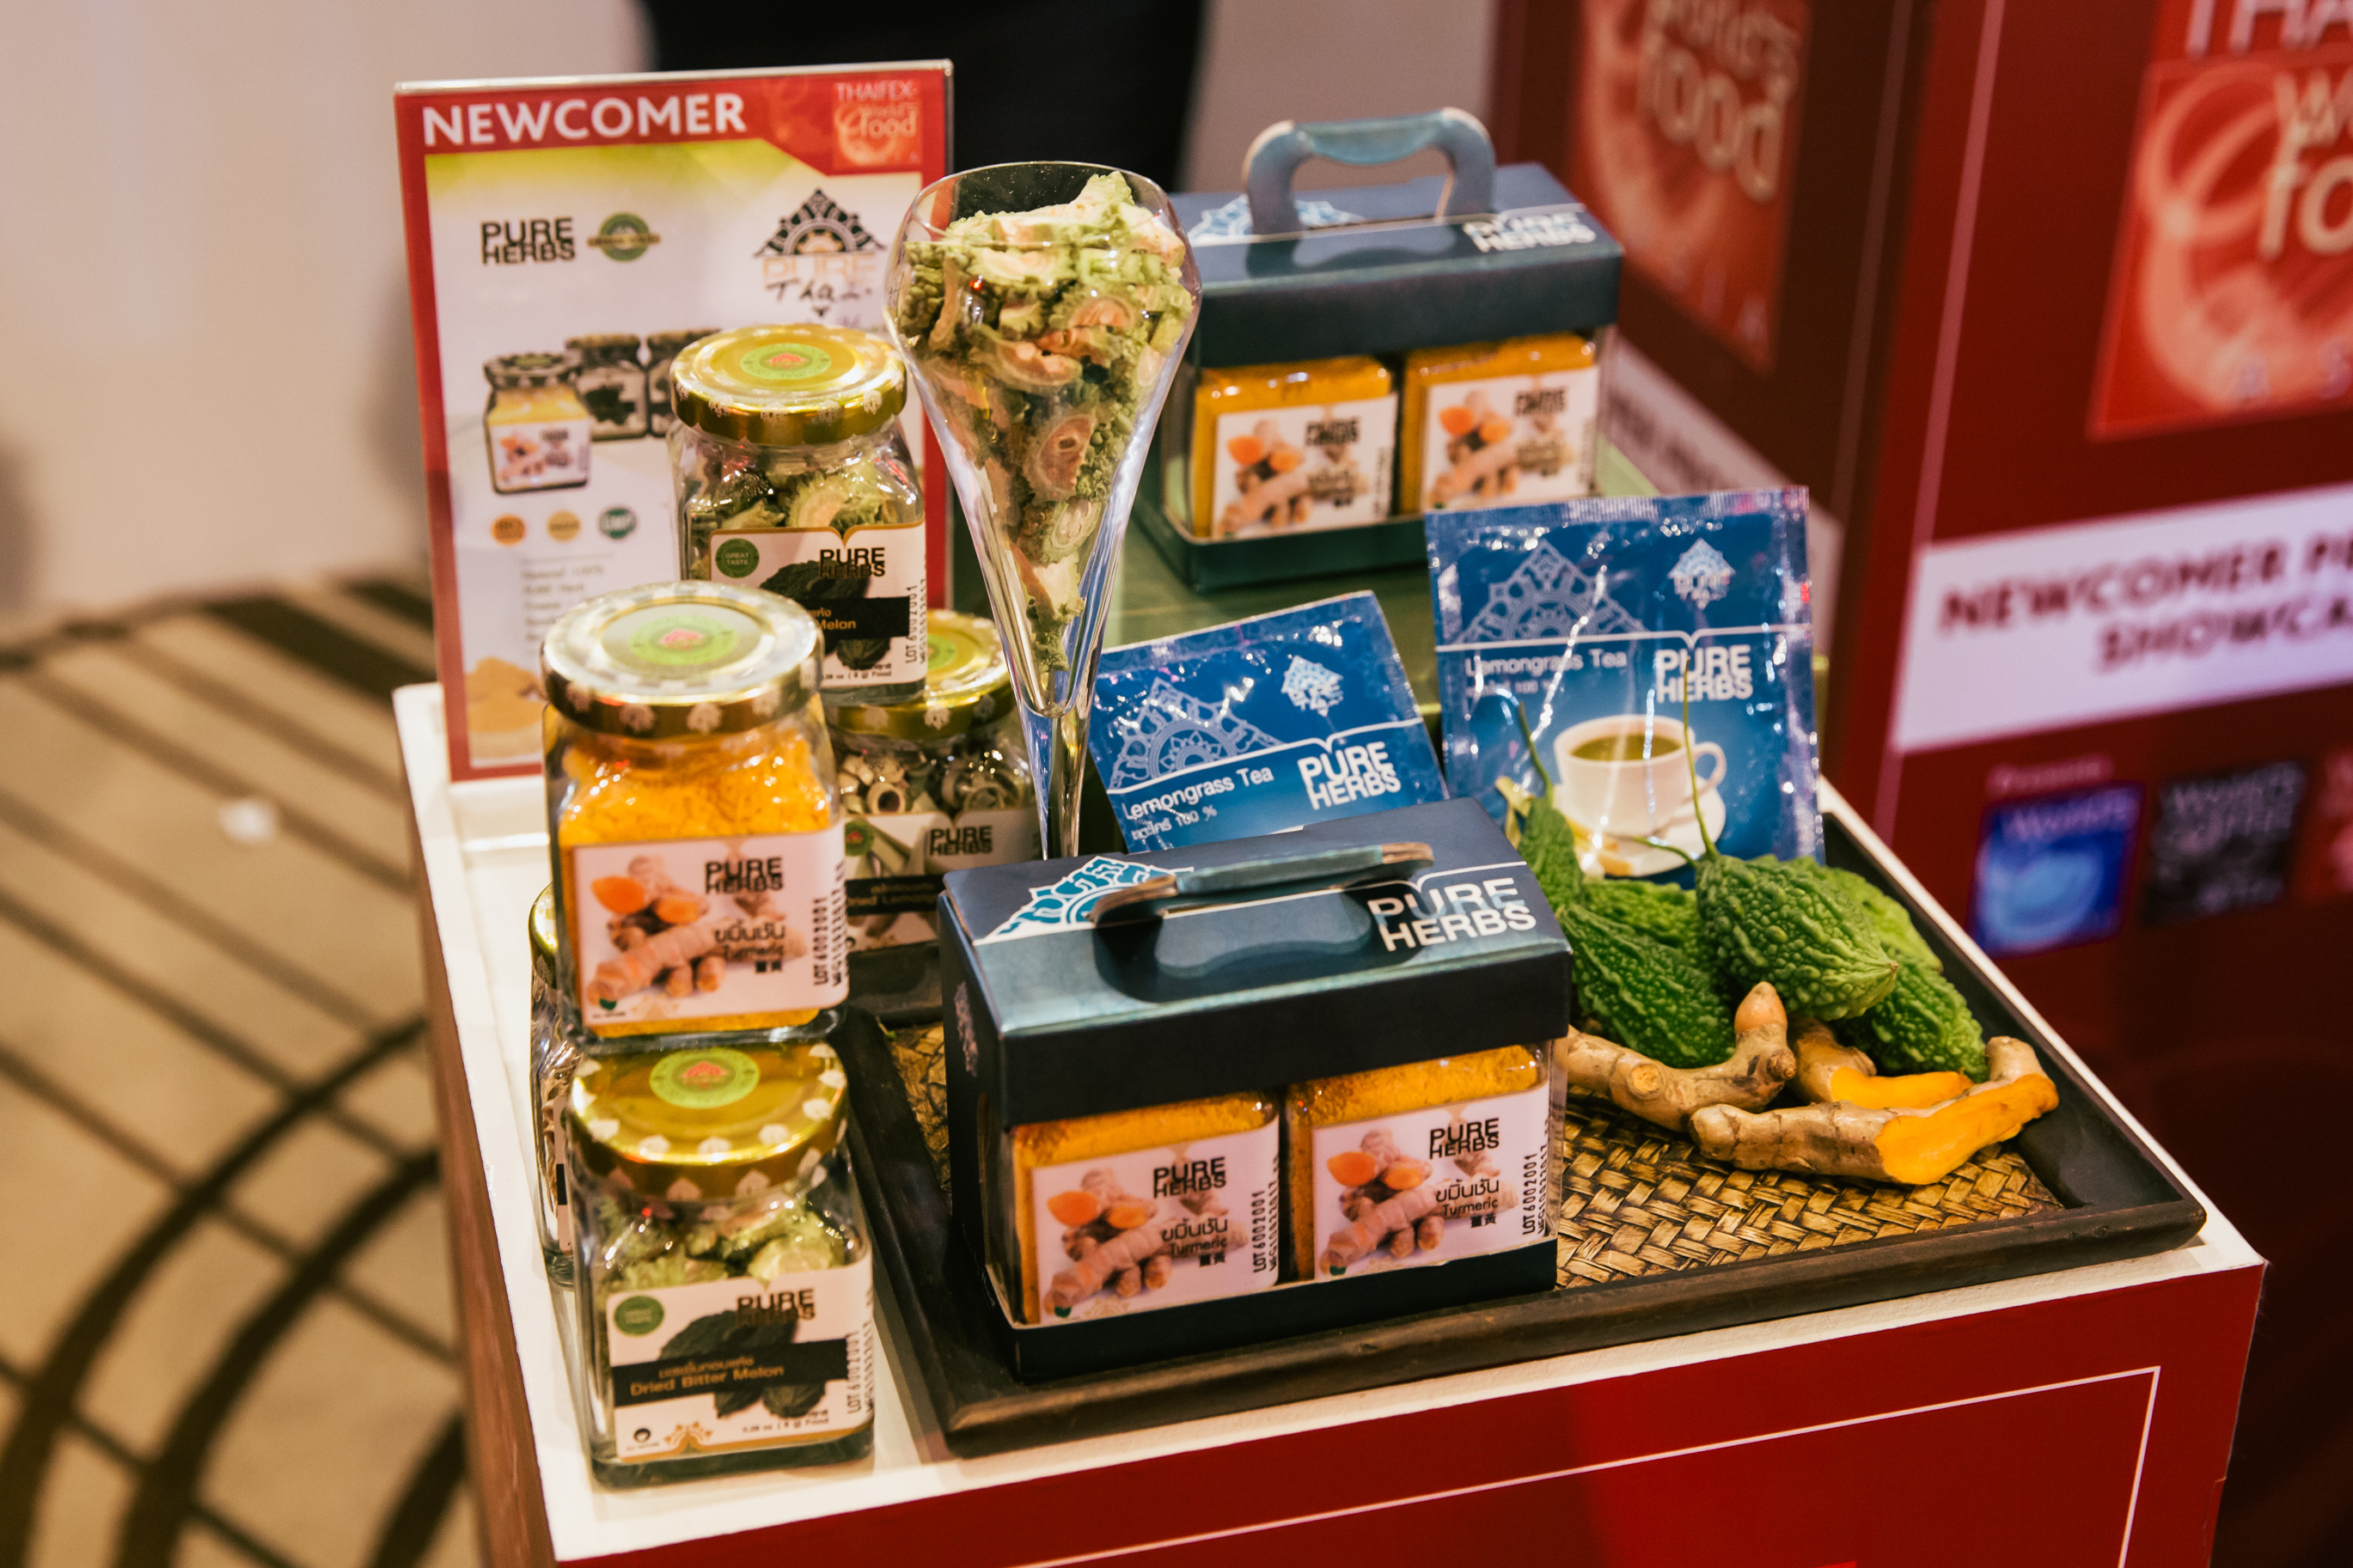 Thailand News 17-03-17 4 NNT Numerous SMEs set to join in annual THAIFEX - World of Food Asia